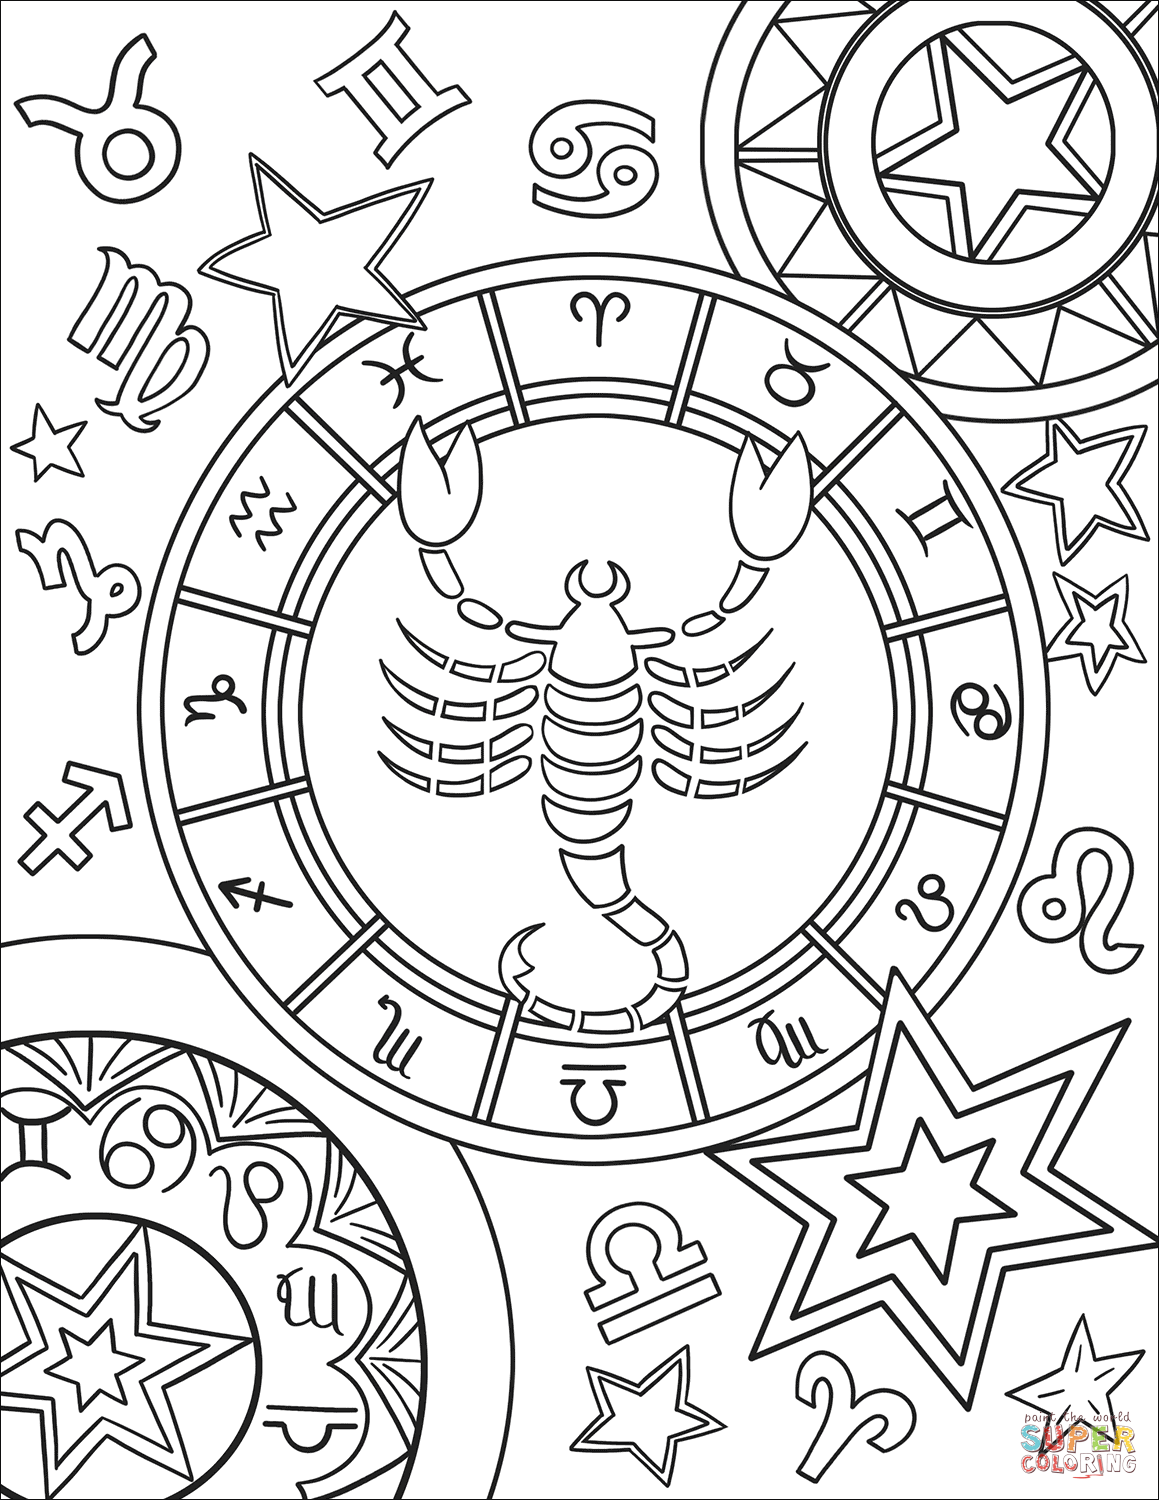 printable zodiac coloring pages taurus zodiac sign coloring page free printable coloring coloring printable pages zodiac